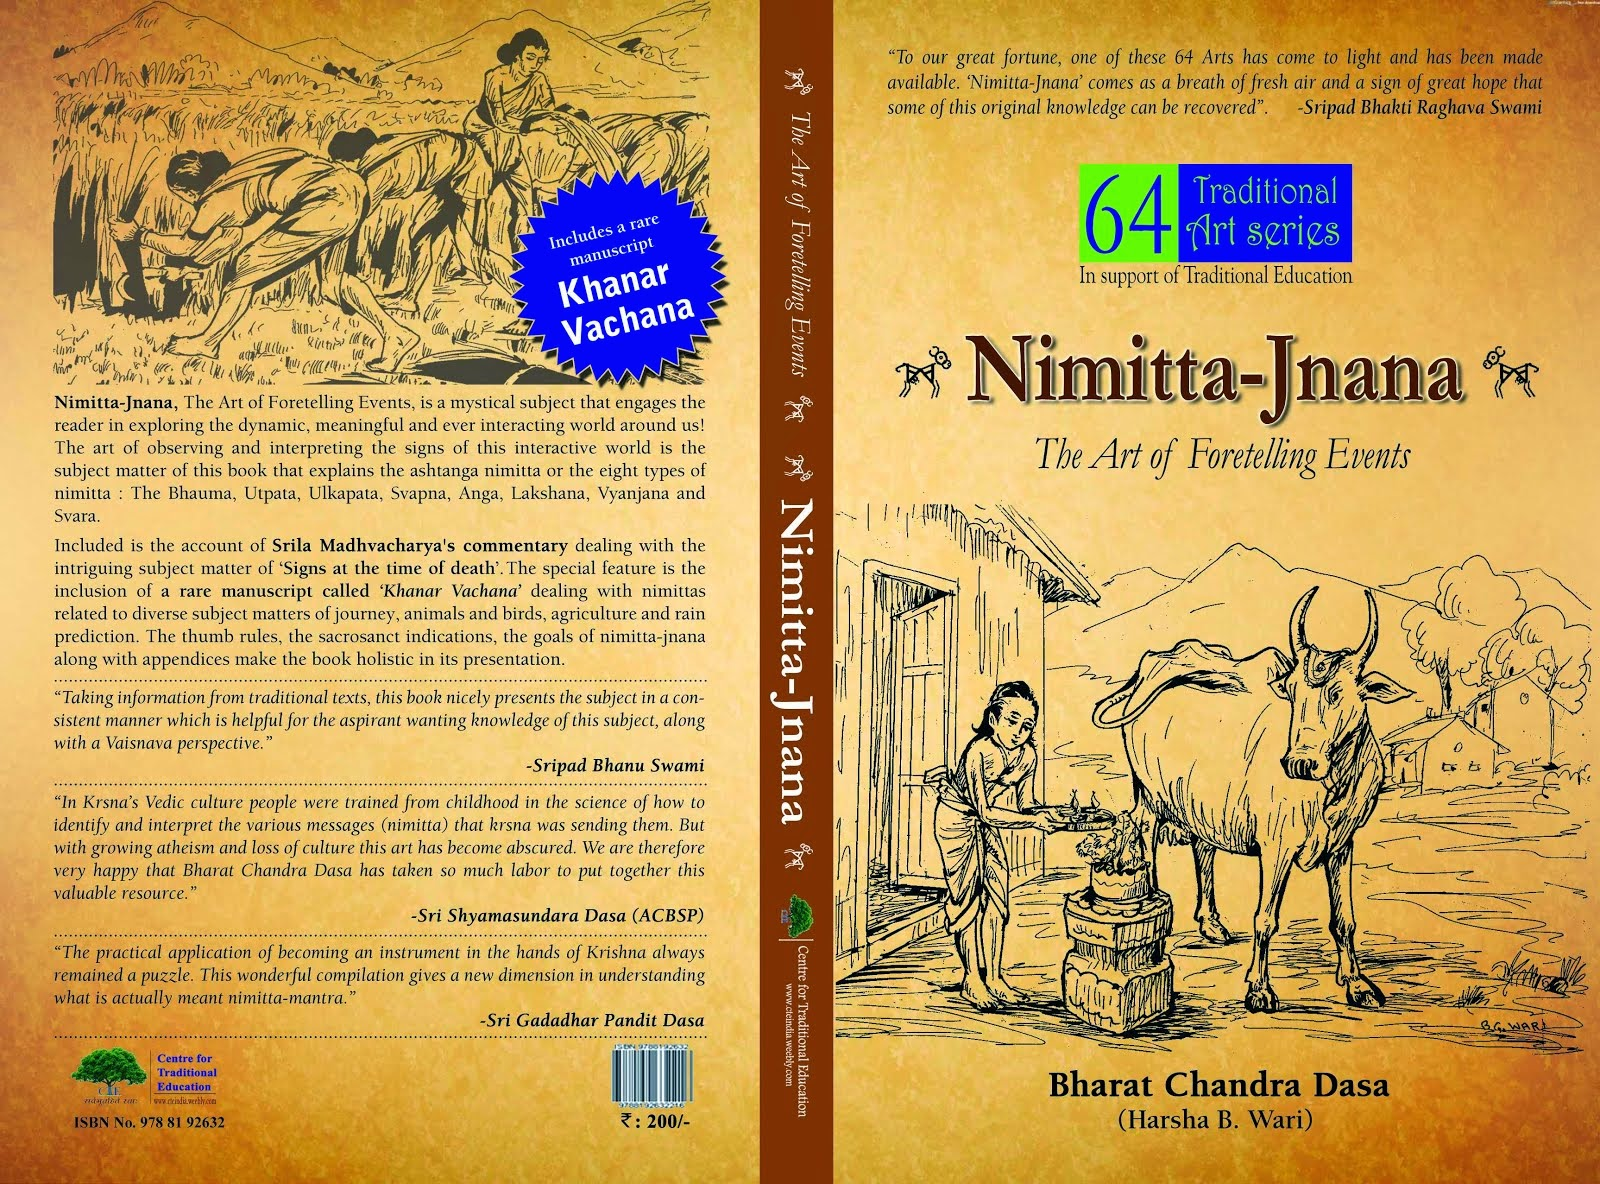 Nimitta-Jnana